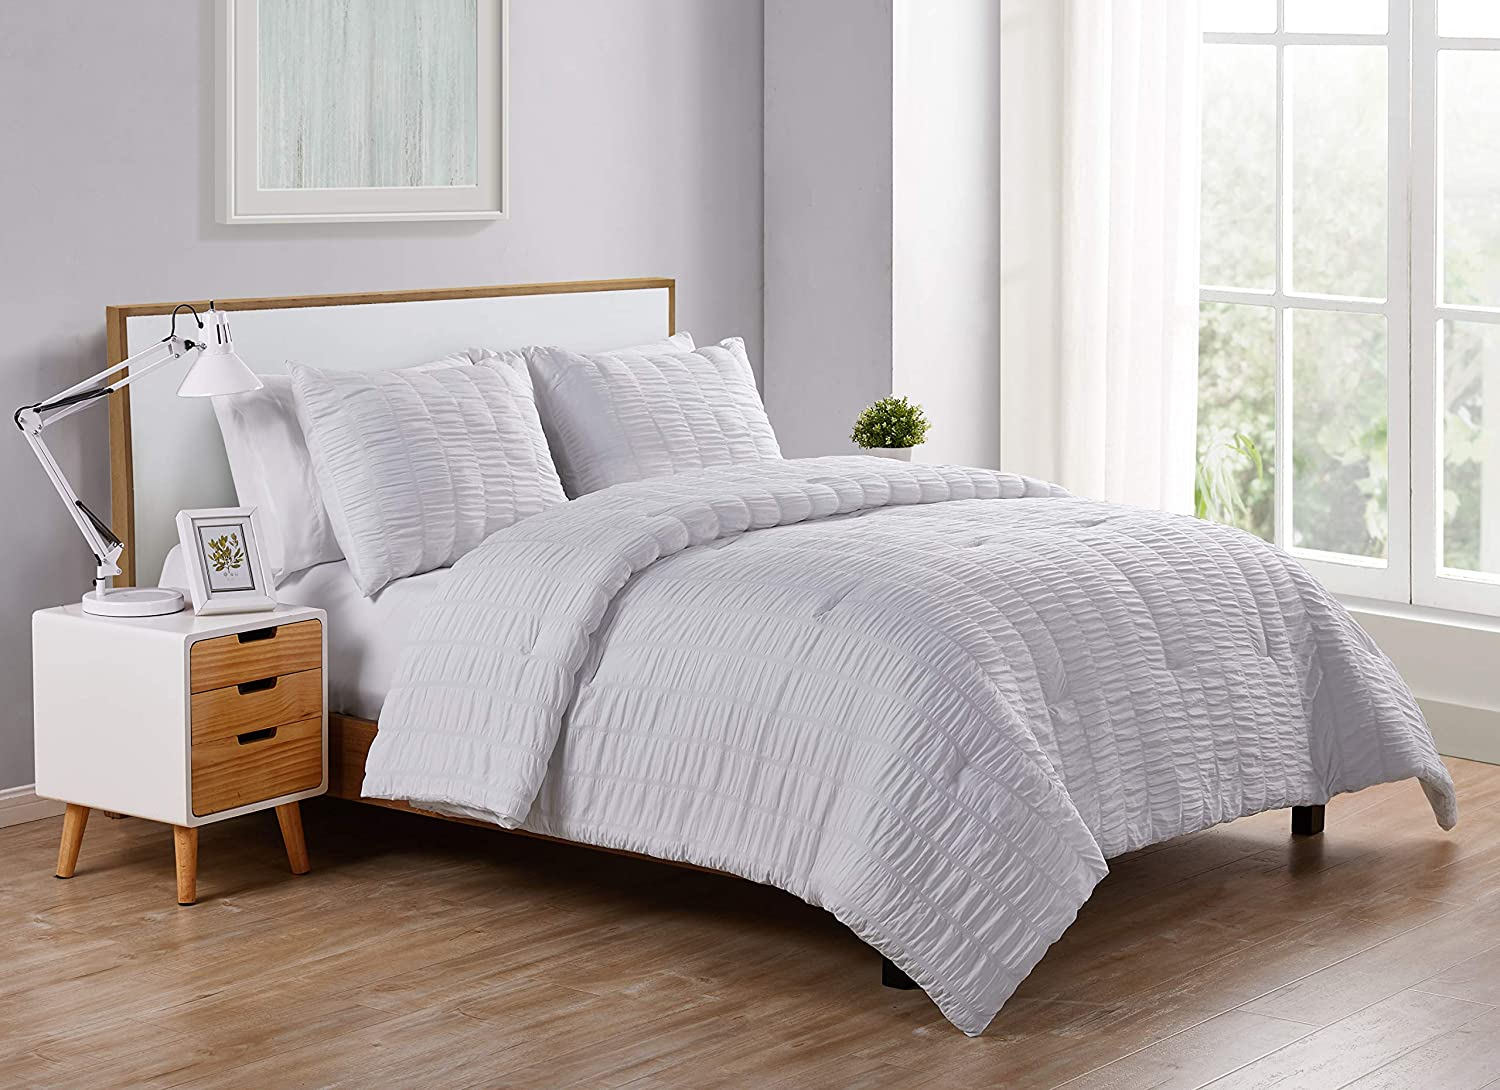 VCNY Home Billie Collection Comforter Soft & Cozy Bedding Set, Stylish Chic Design for Home Décor, Machine Washable, Ful/Queen, White